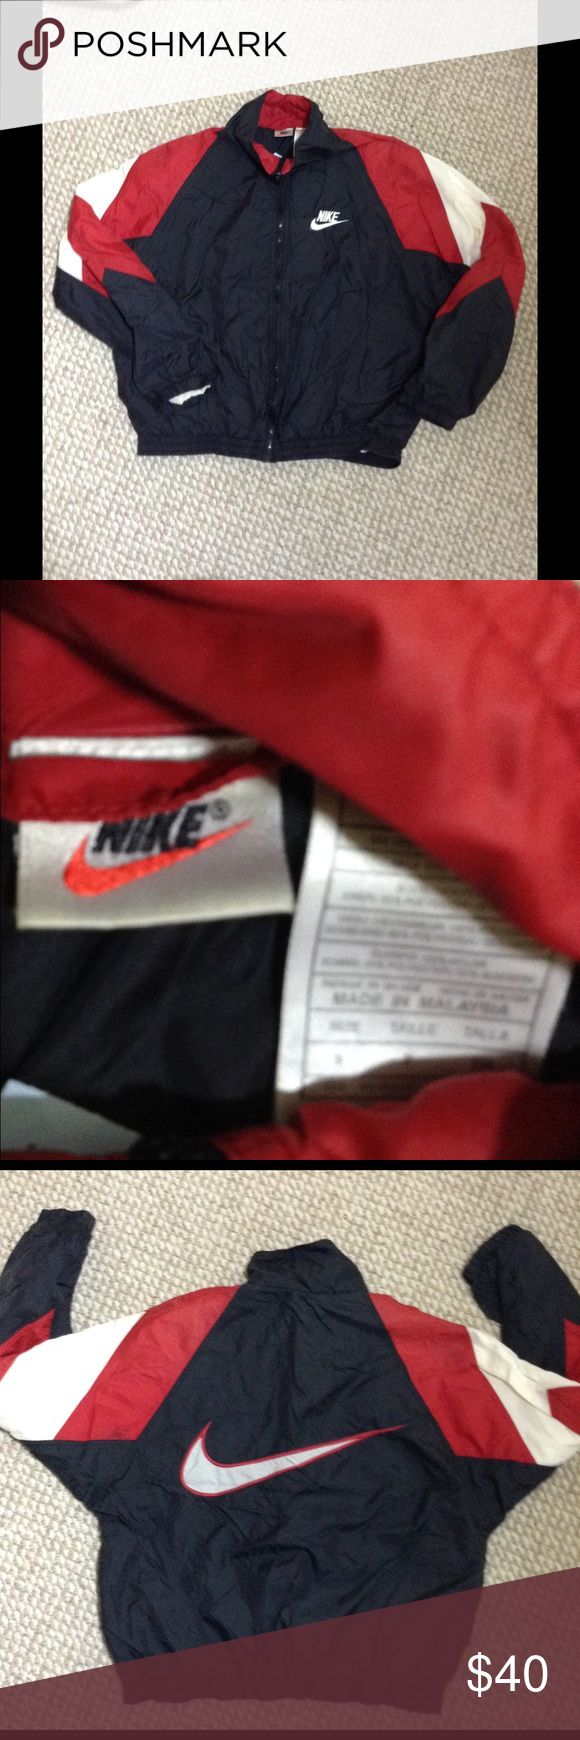 Vintage Nike windbreaker This is a rare vintage red nike check tag windbreaker. It dates back to the Jordan era... It is a extra awesome color way with the red black and white normal flaws for its age, amazing jacket men's small will look great on a medium women Nike Jackets & Coats Windbreakers